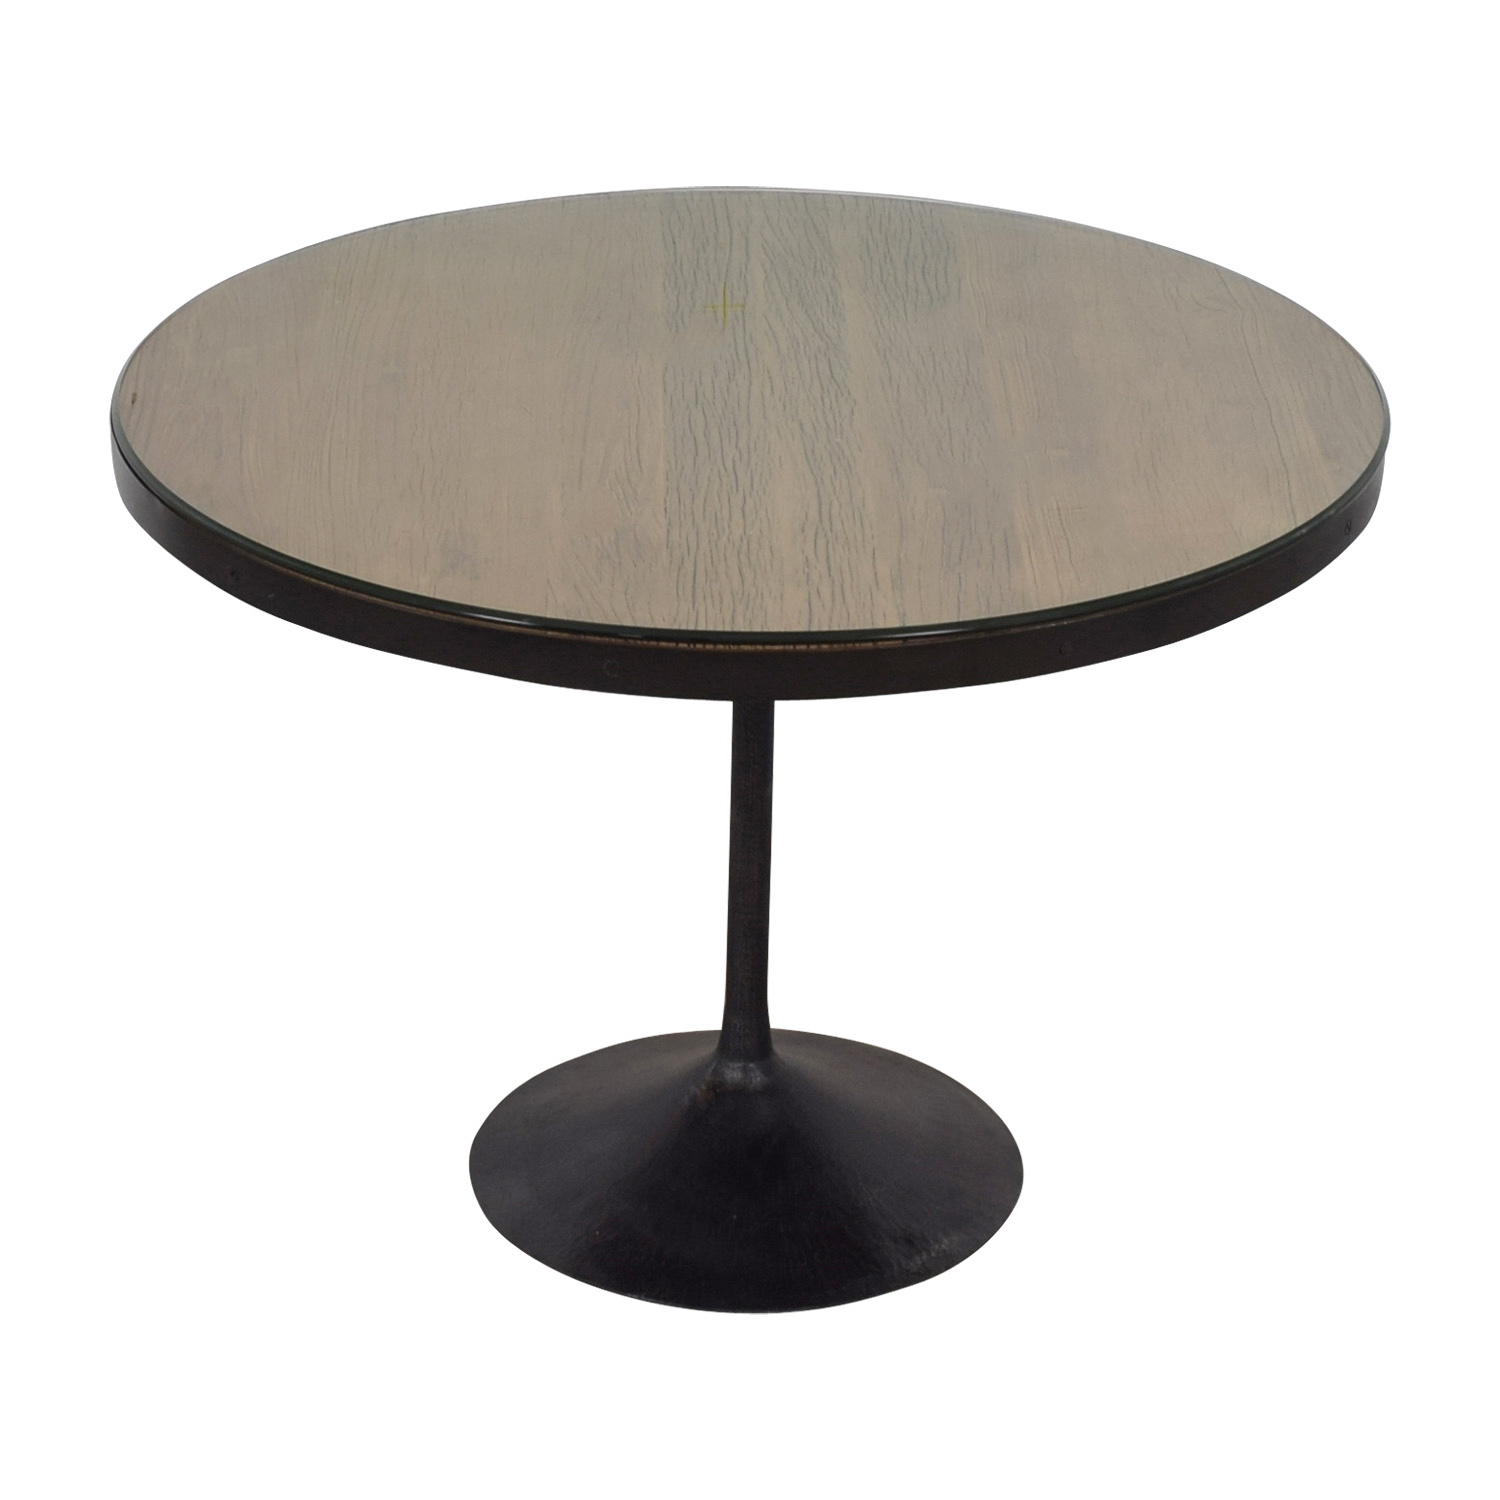 Restoration Hardware Restoration Hardware Aero Round Dining Table Tables